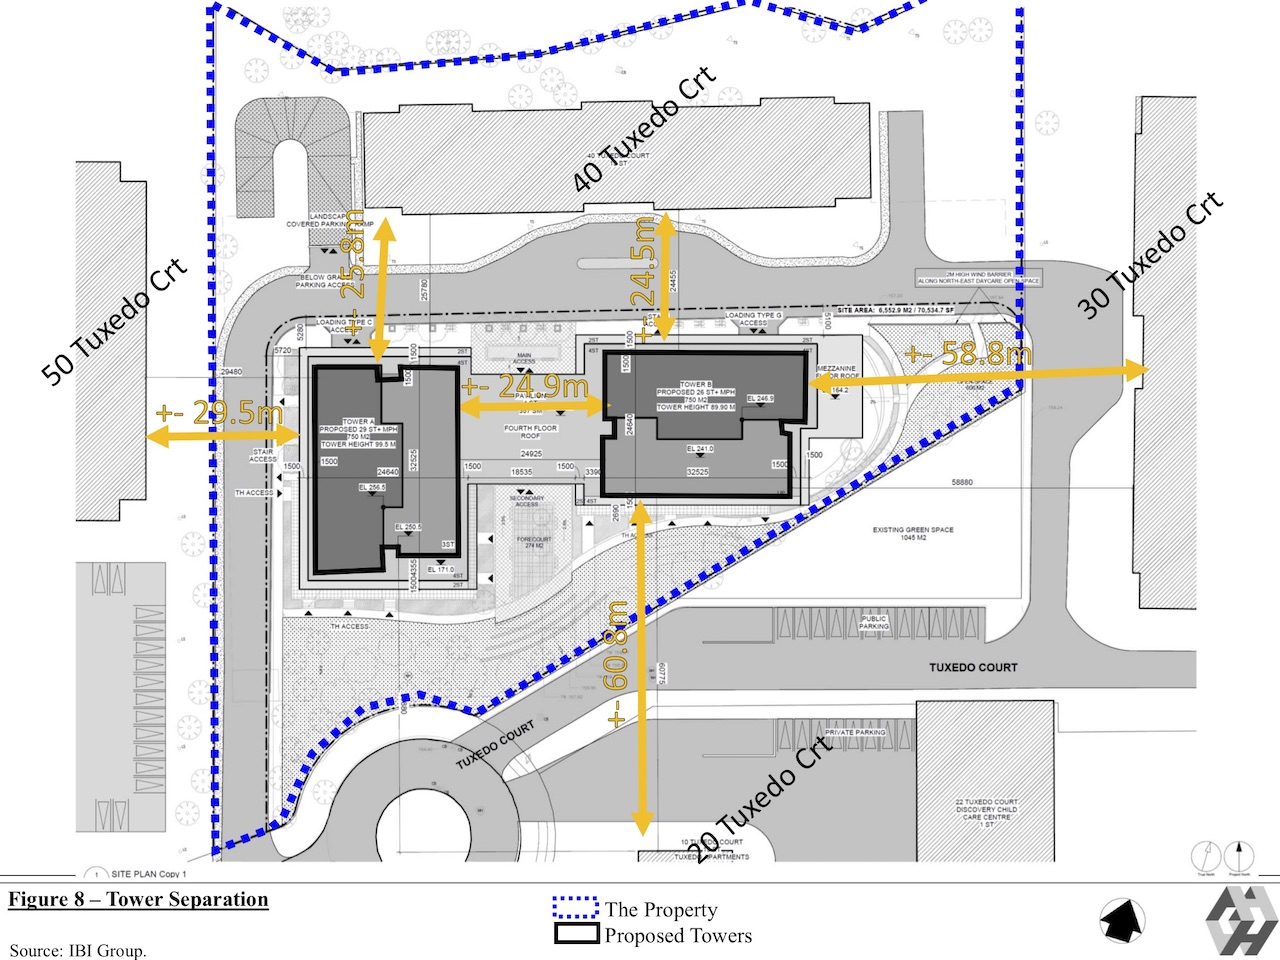 Site Plan, 42 Tuxedo Court, Toronto, designed by IBI Group for Reserve Properties